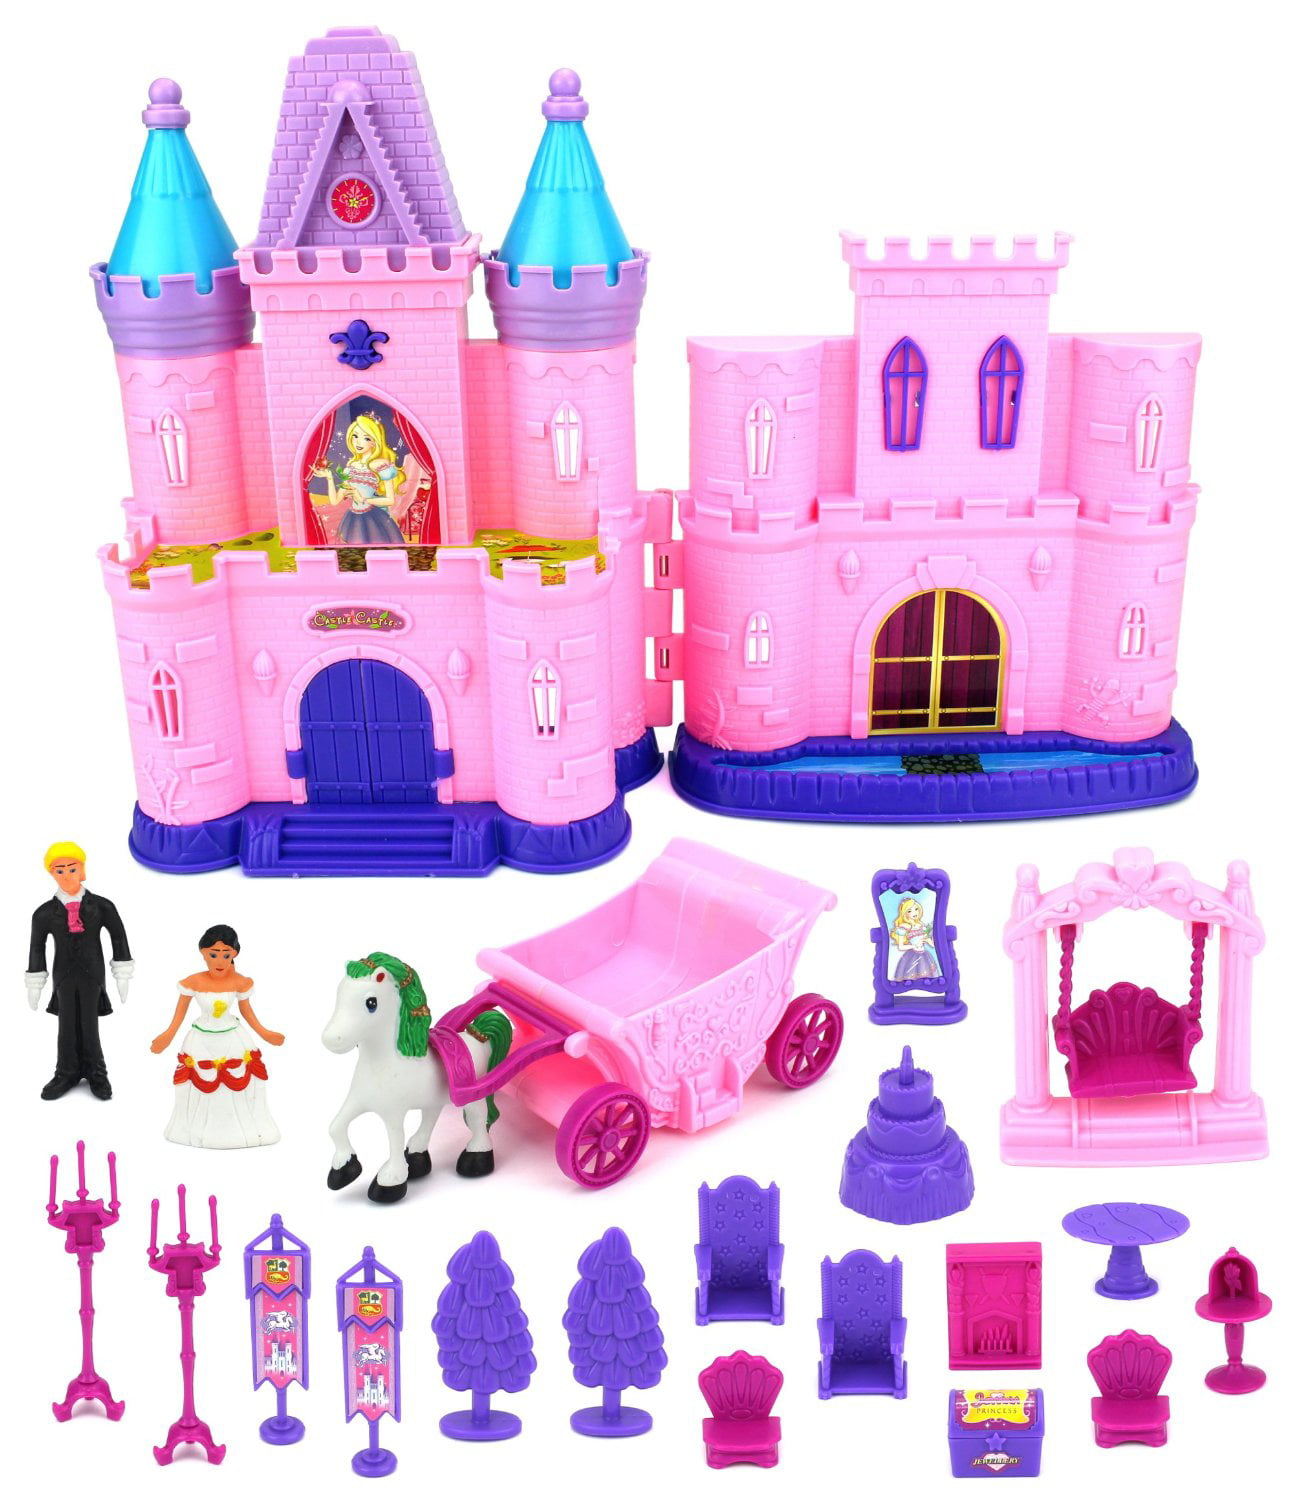 My Dream Castle Toy Doll Playset W/ Lights, Sounds, Prince And Princess  Figures